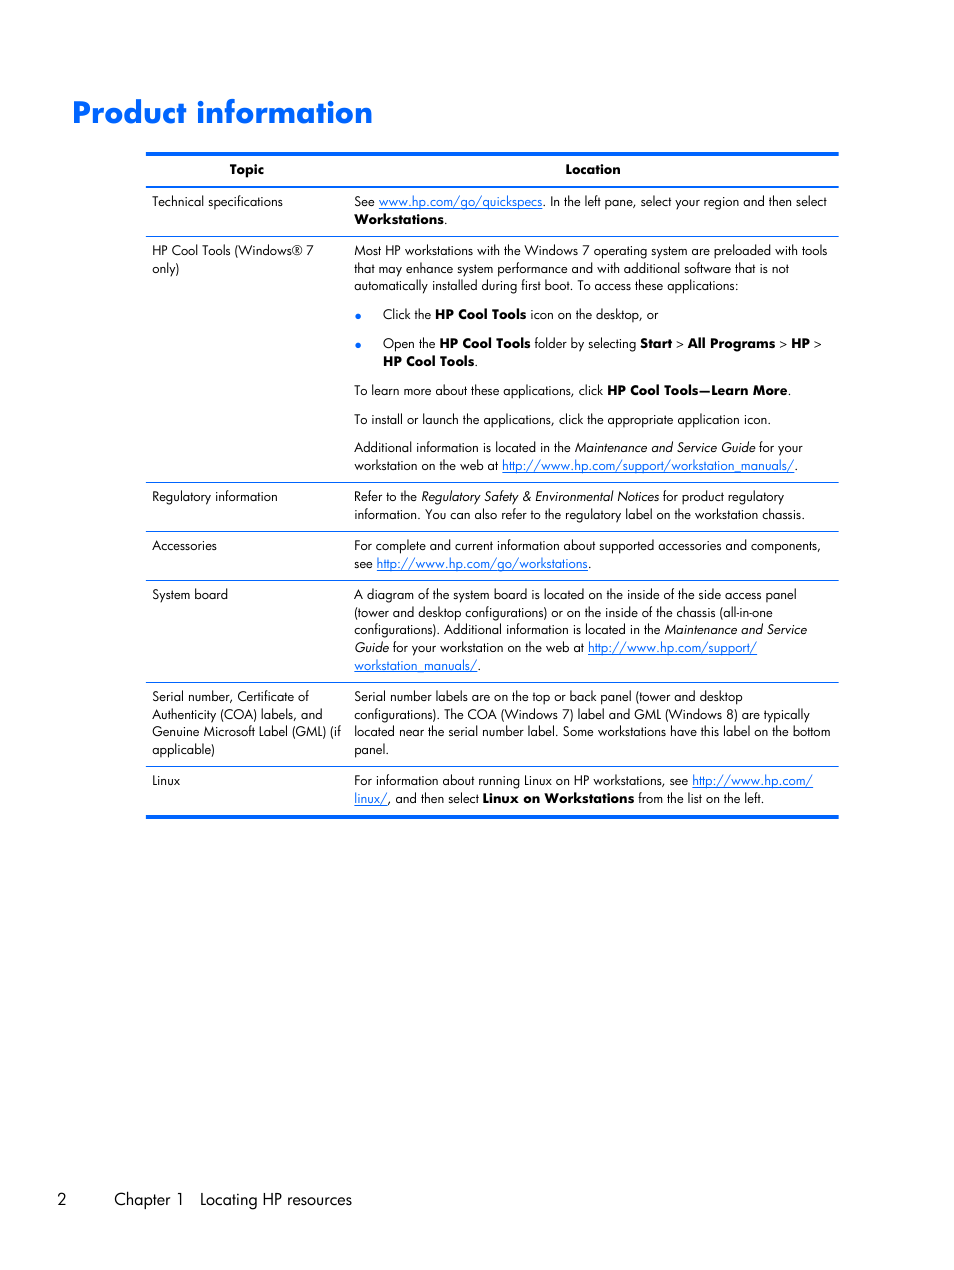 Product information   HP Z230 Tower-Workstation User Manual